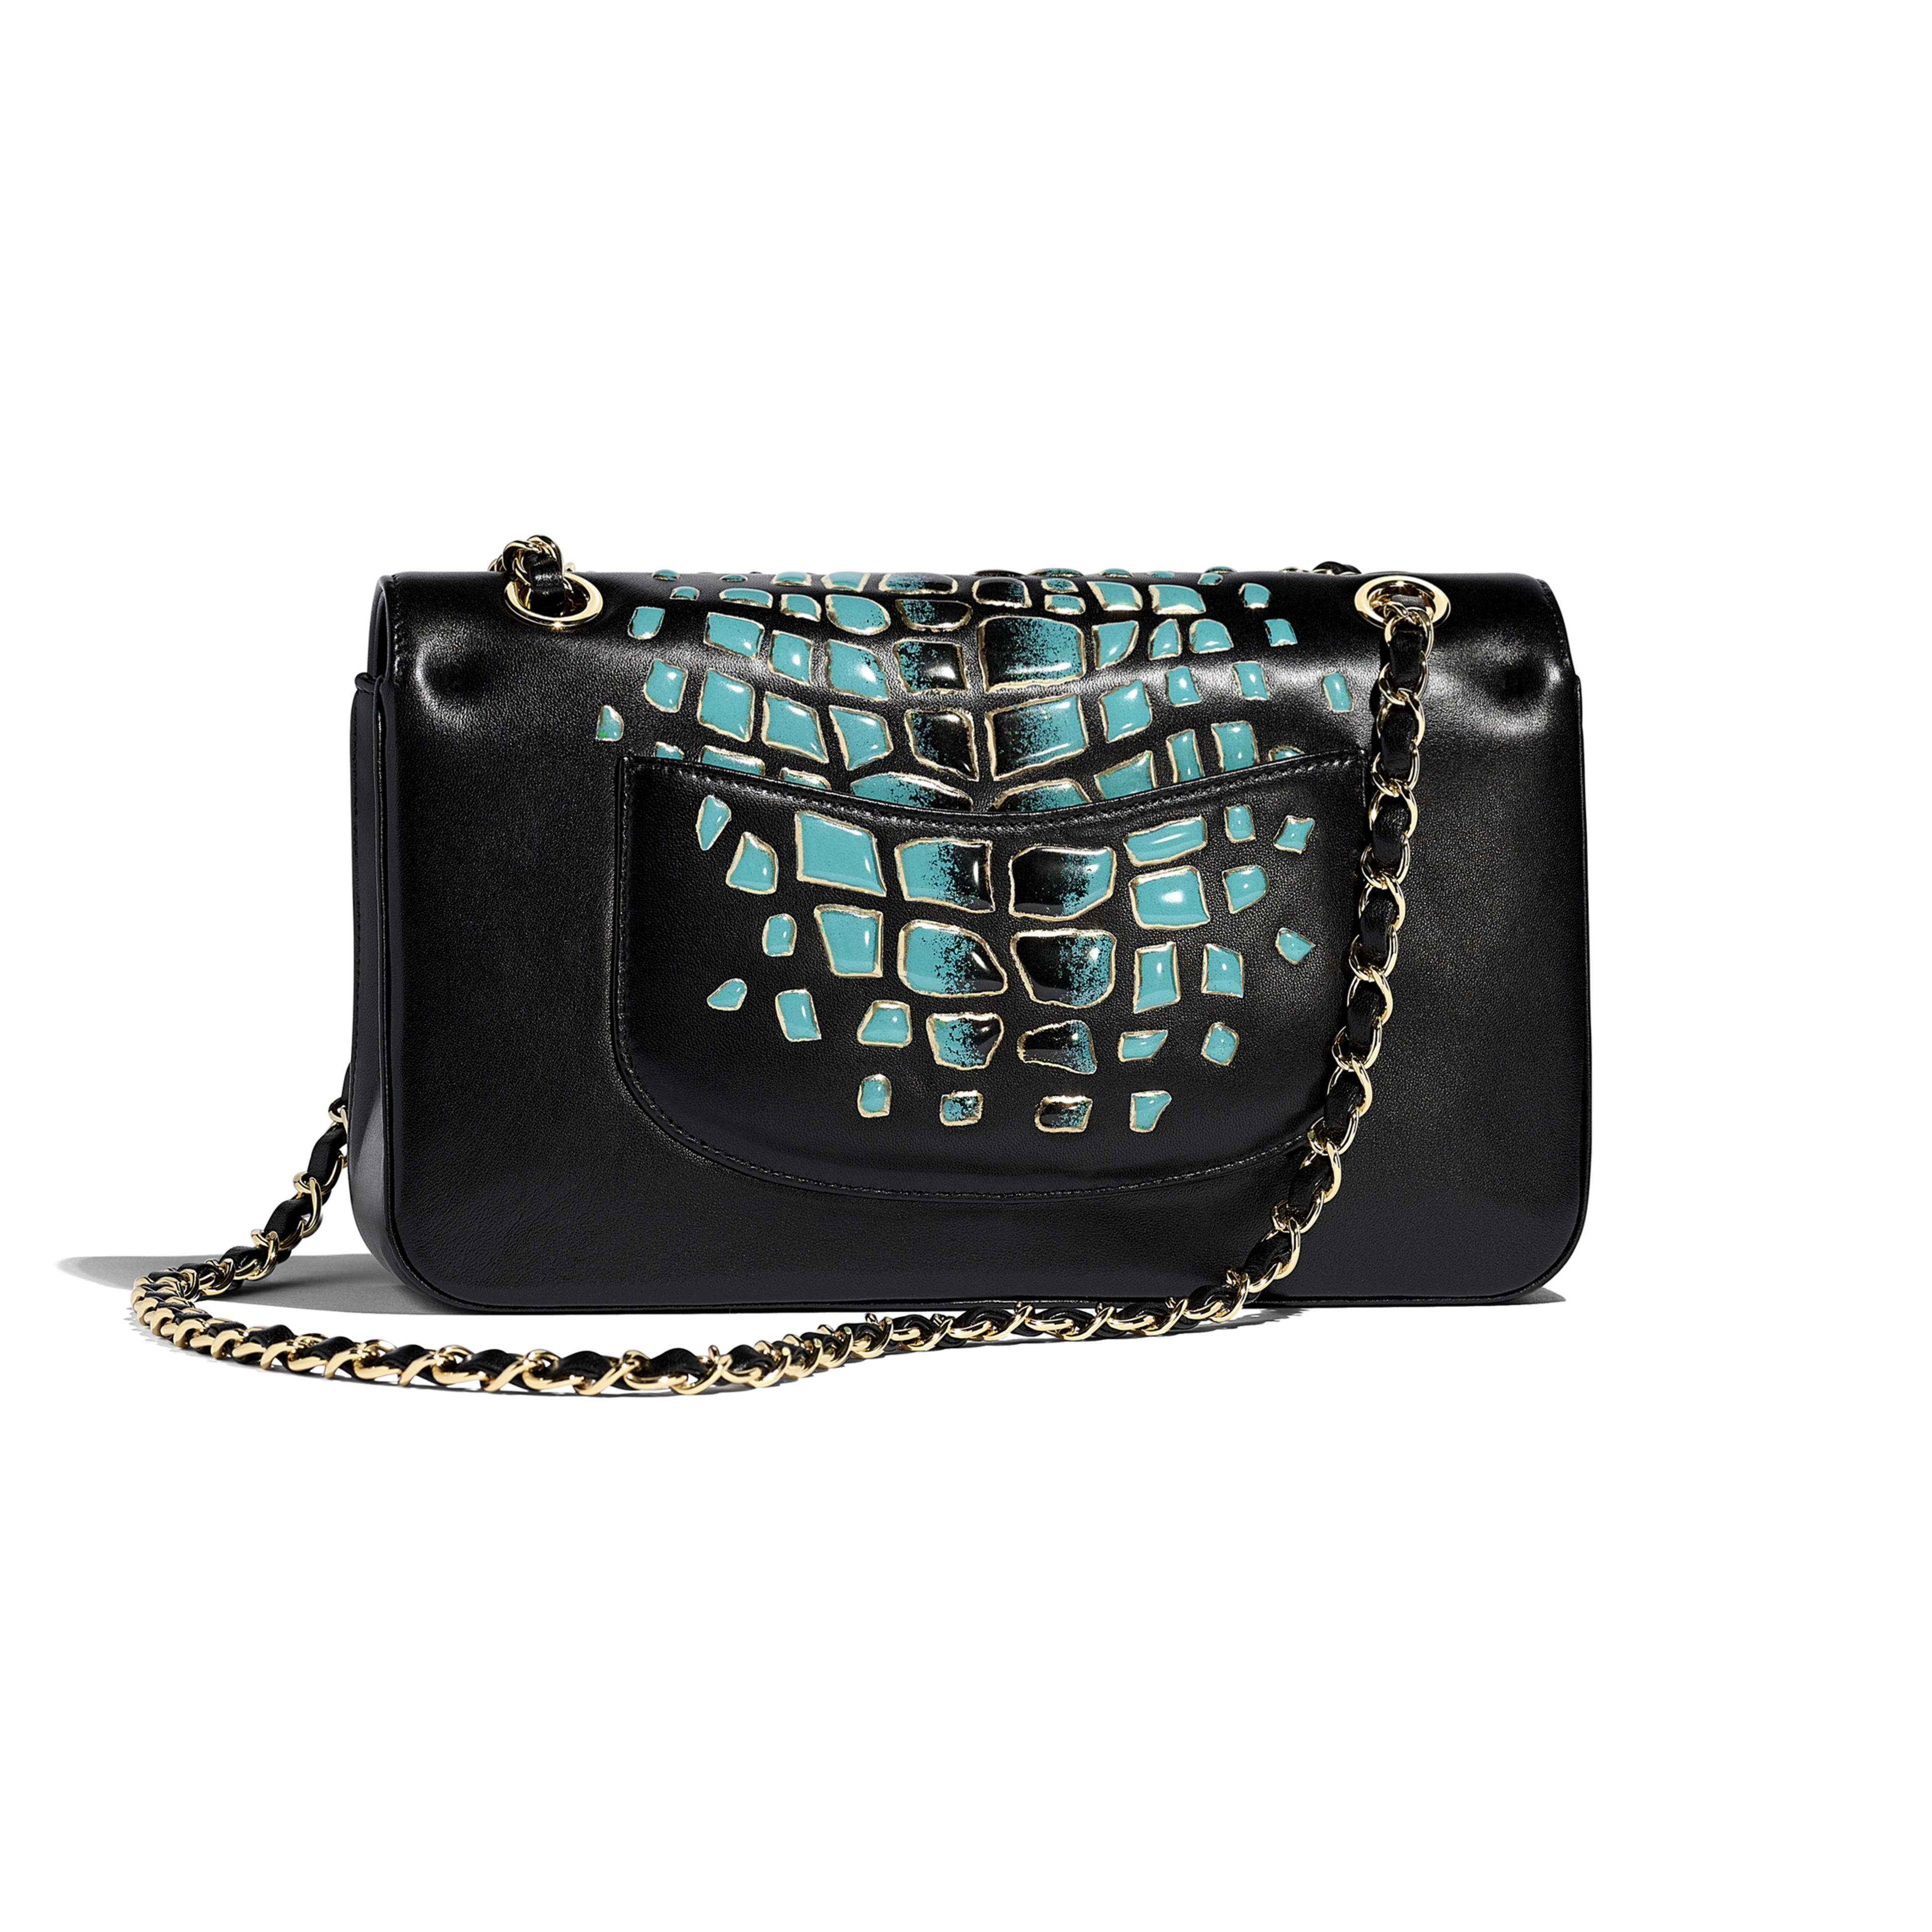 Classic Handbag - Turquoise & Black - Lambskin, Resin & Gold-Tone Metal - Alternative view - see full sized version